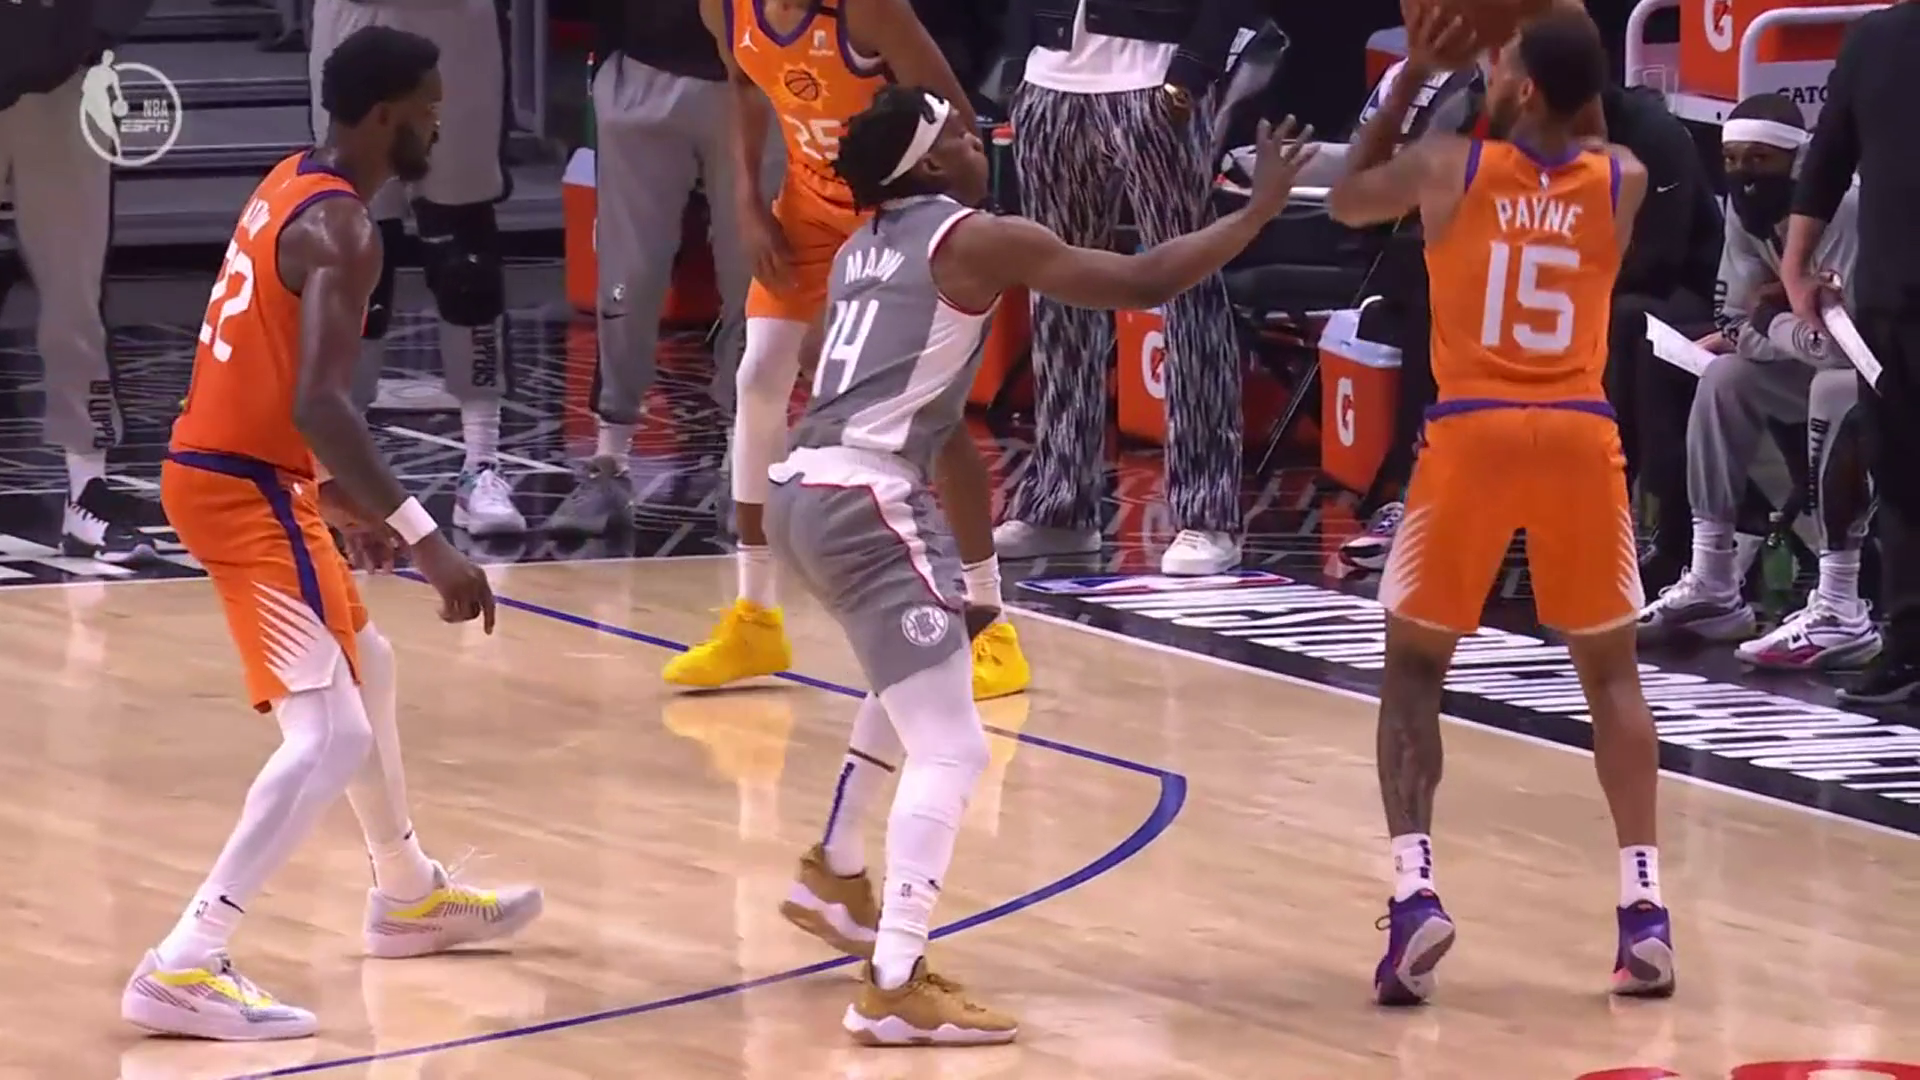 Suns vs Clippers Highlights: Game 4